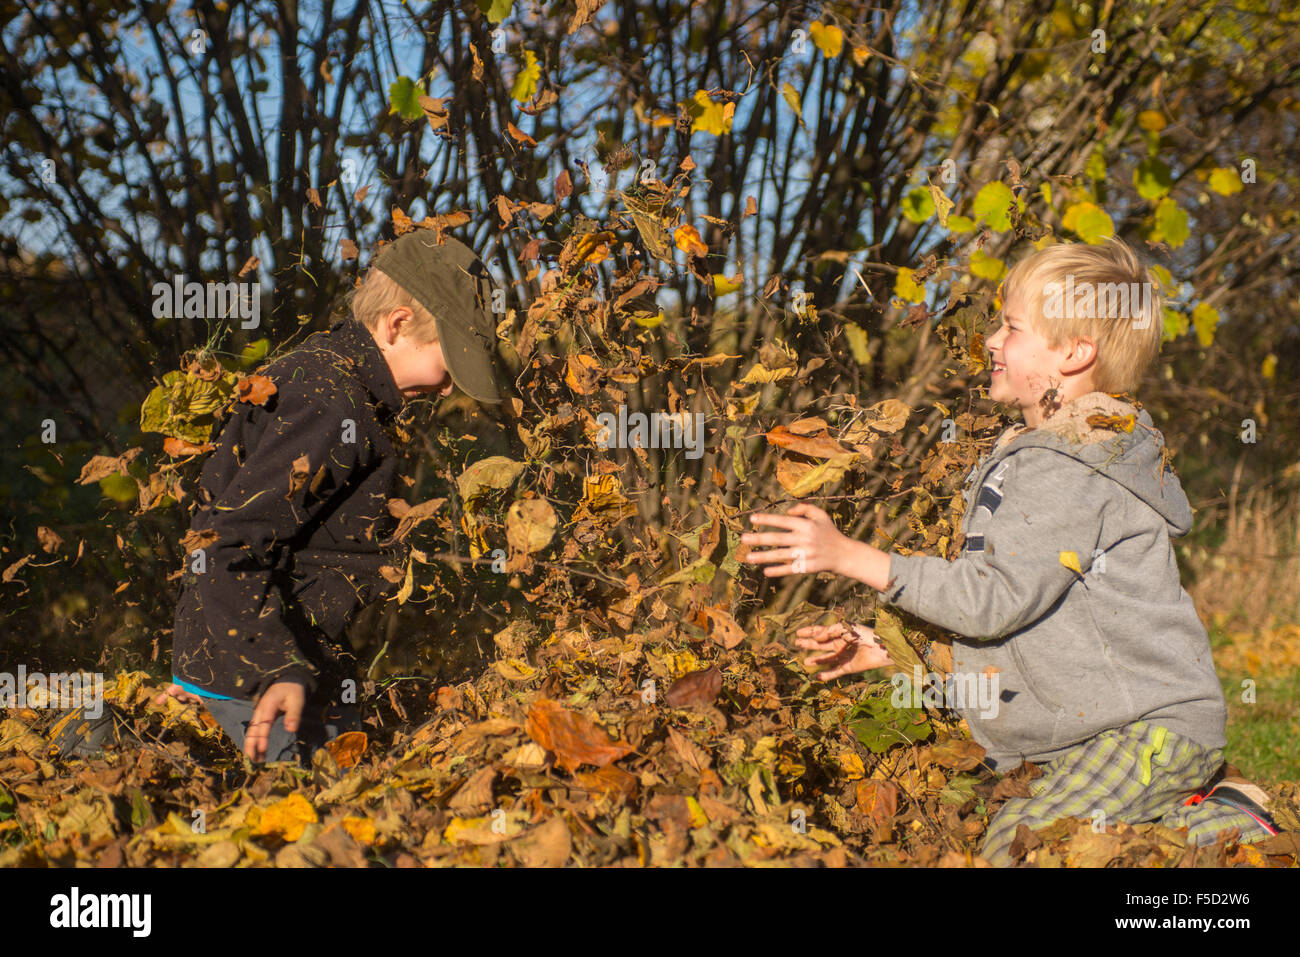 Two Children boys playing, throwing autumn leaves from pile in the ...